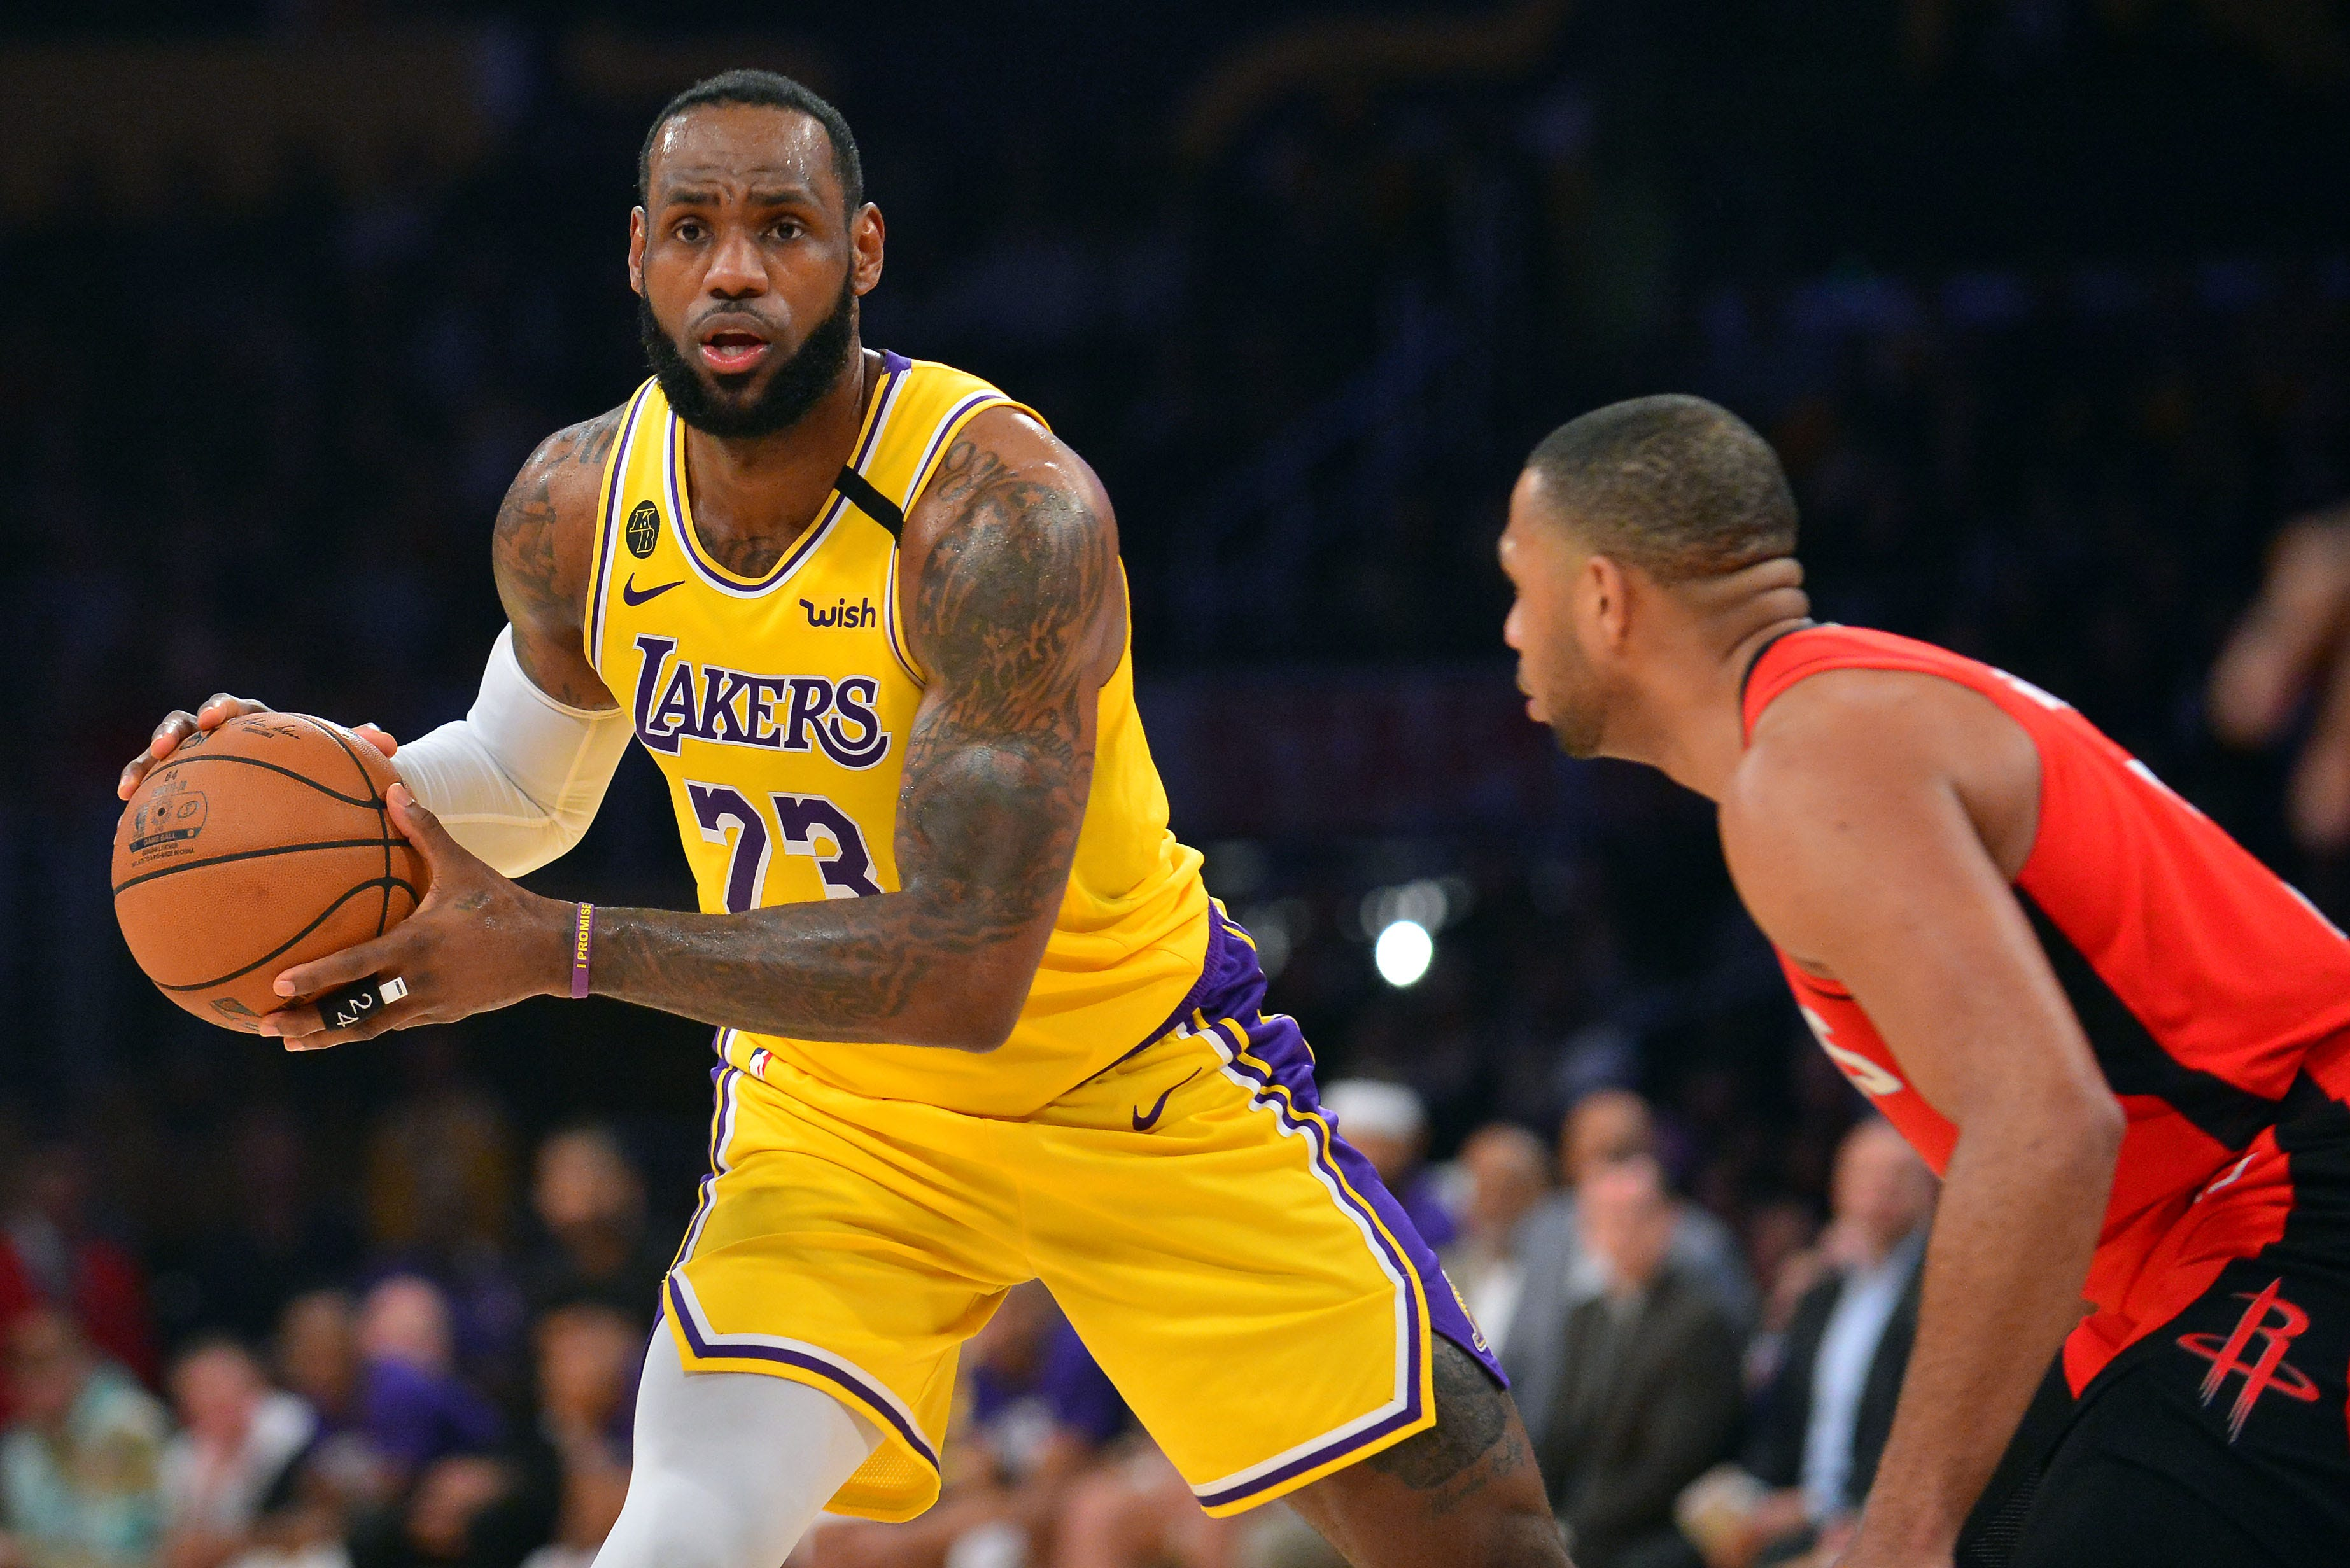 Lebron James Still Drawing Rave Reviews For His Kobe Bryant Tribute Dunk Newsplus24